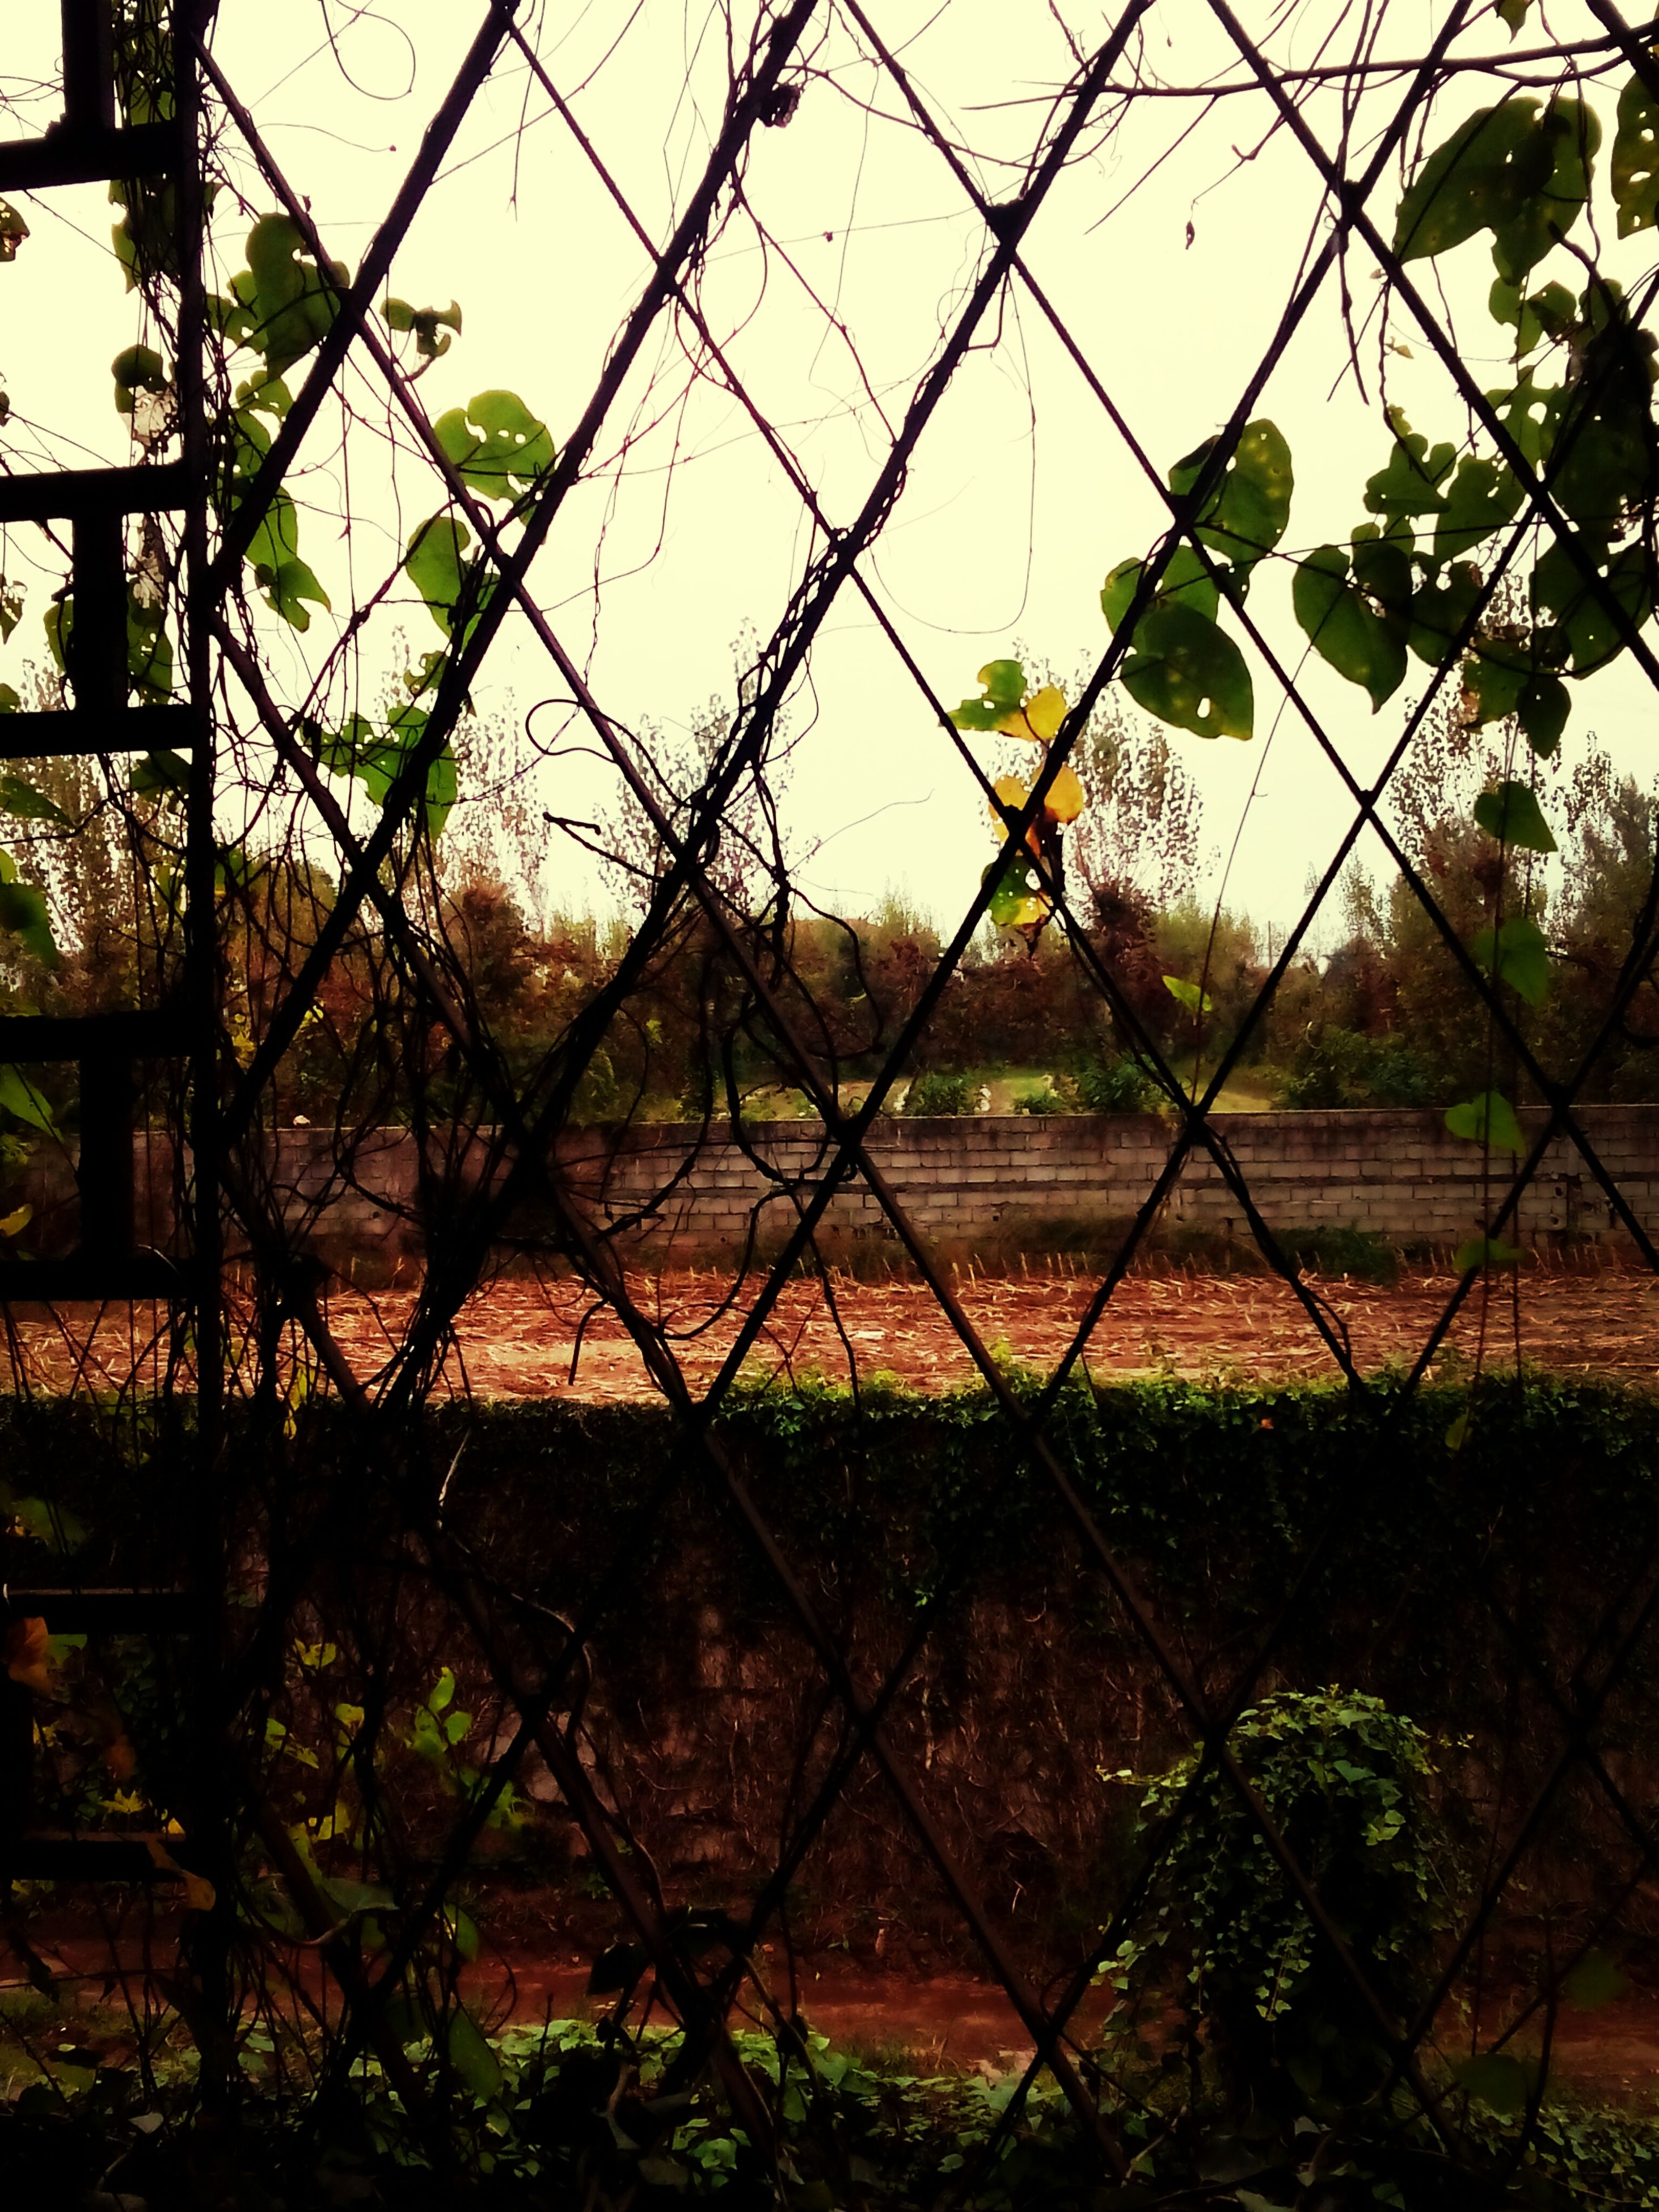 fence, protection, safety, chainlink fence, security, field, tranquility, sky, landscape, tranquil scene, tree, grass, metal, nature, growth, scenics, beauty in nature, plant, no people, green color